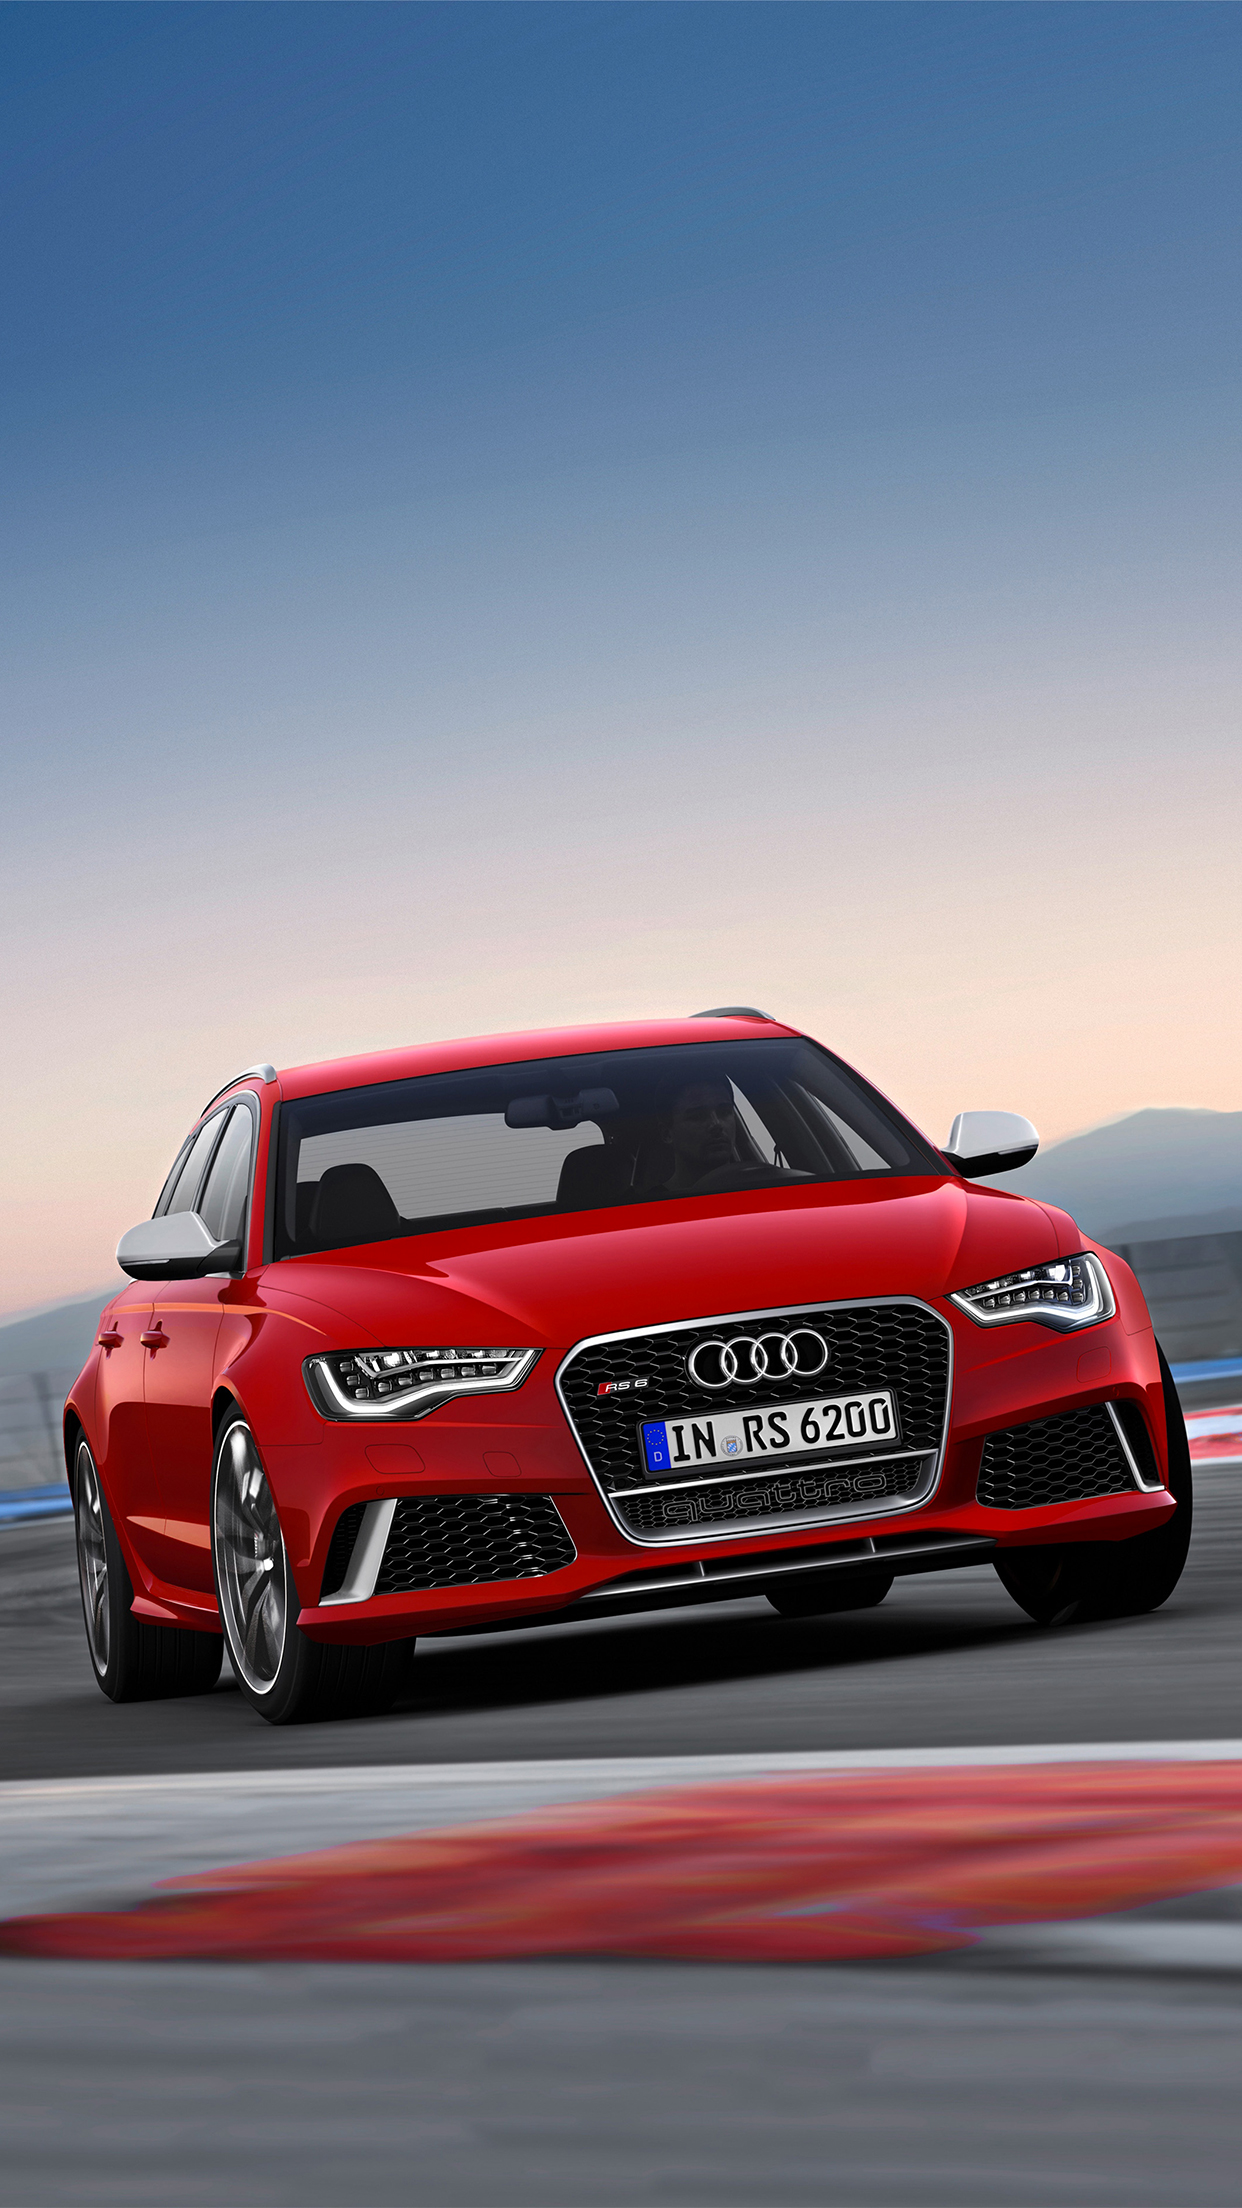 Audi Rs6 Wallpaper For Iphone X 8 7 6 Free Download On 3wallpapers